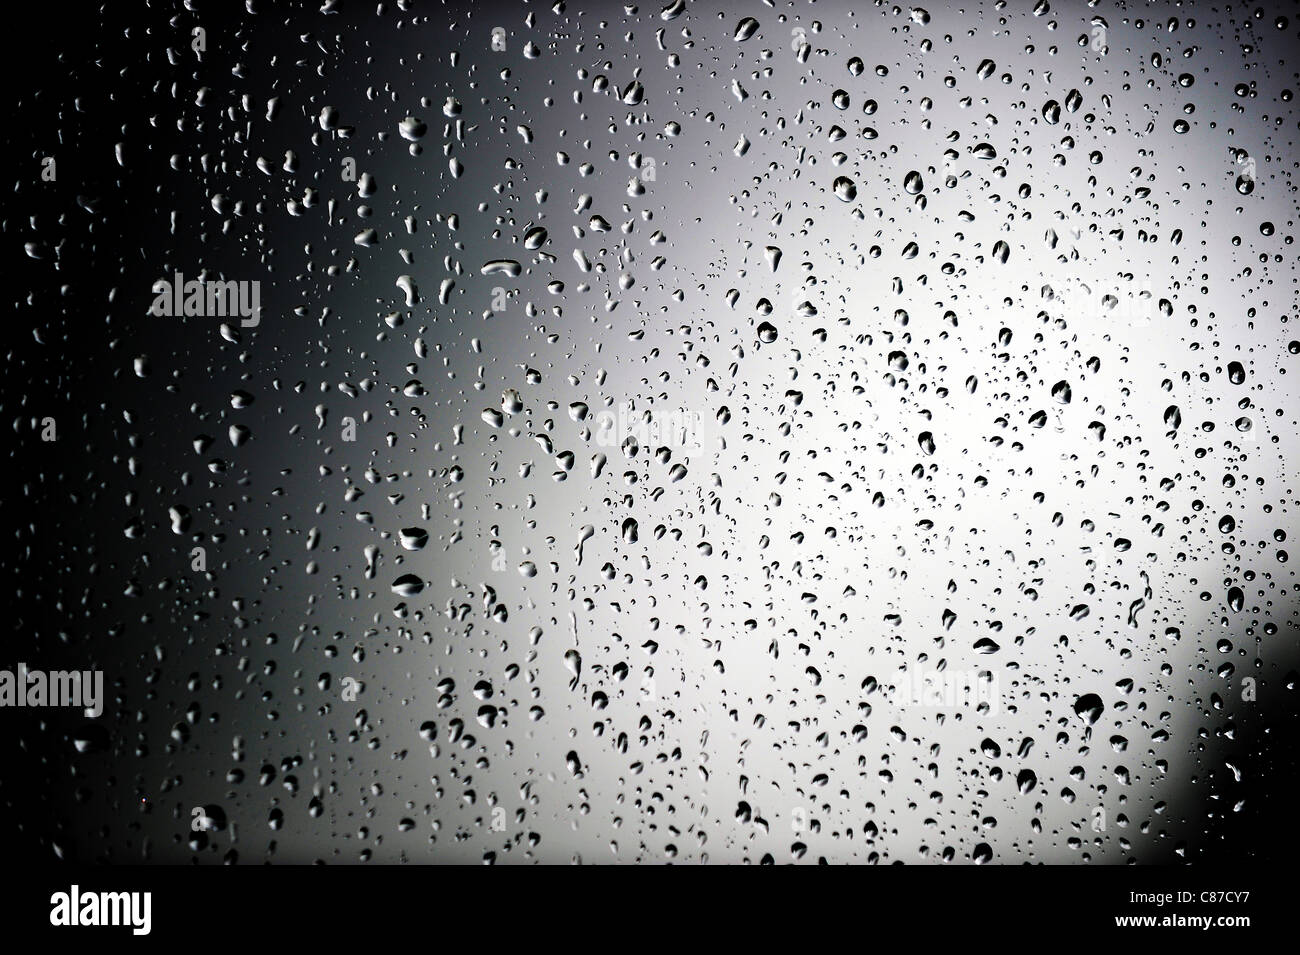 Rain On Windows Stock Photos & Rain On Windows Stock Images